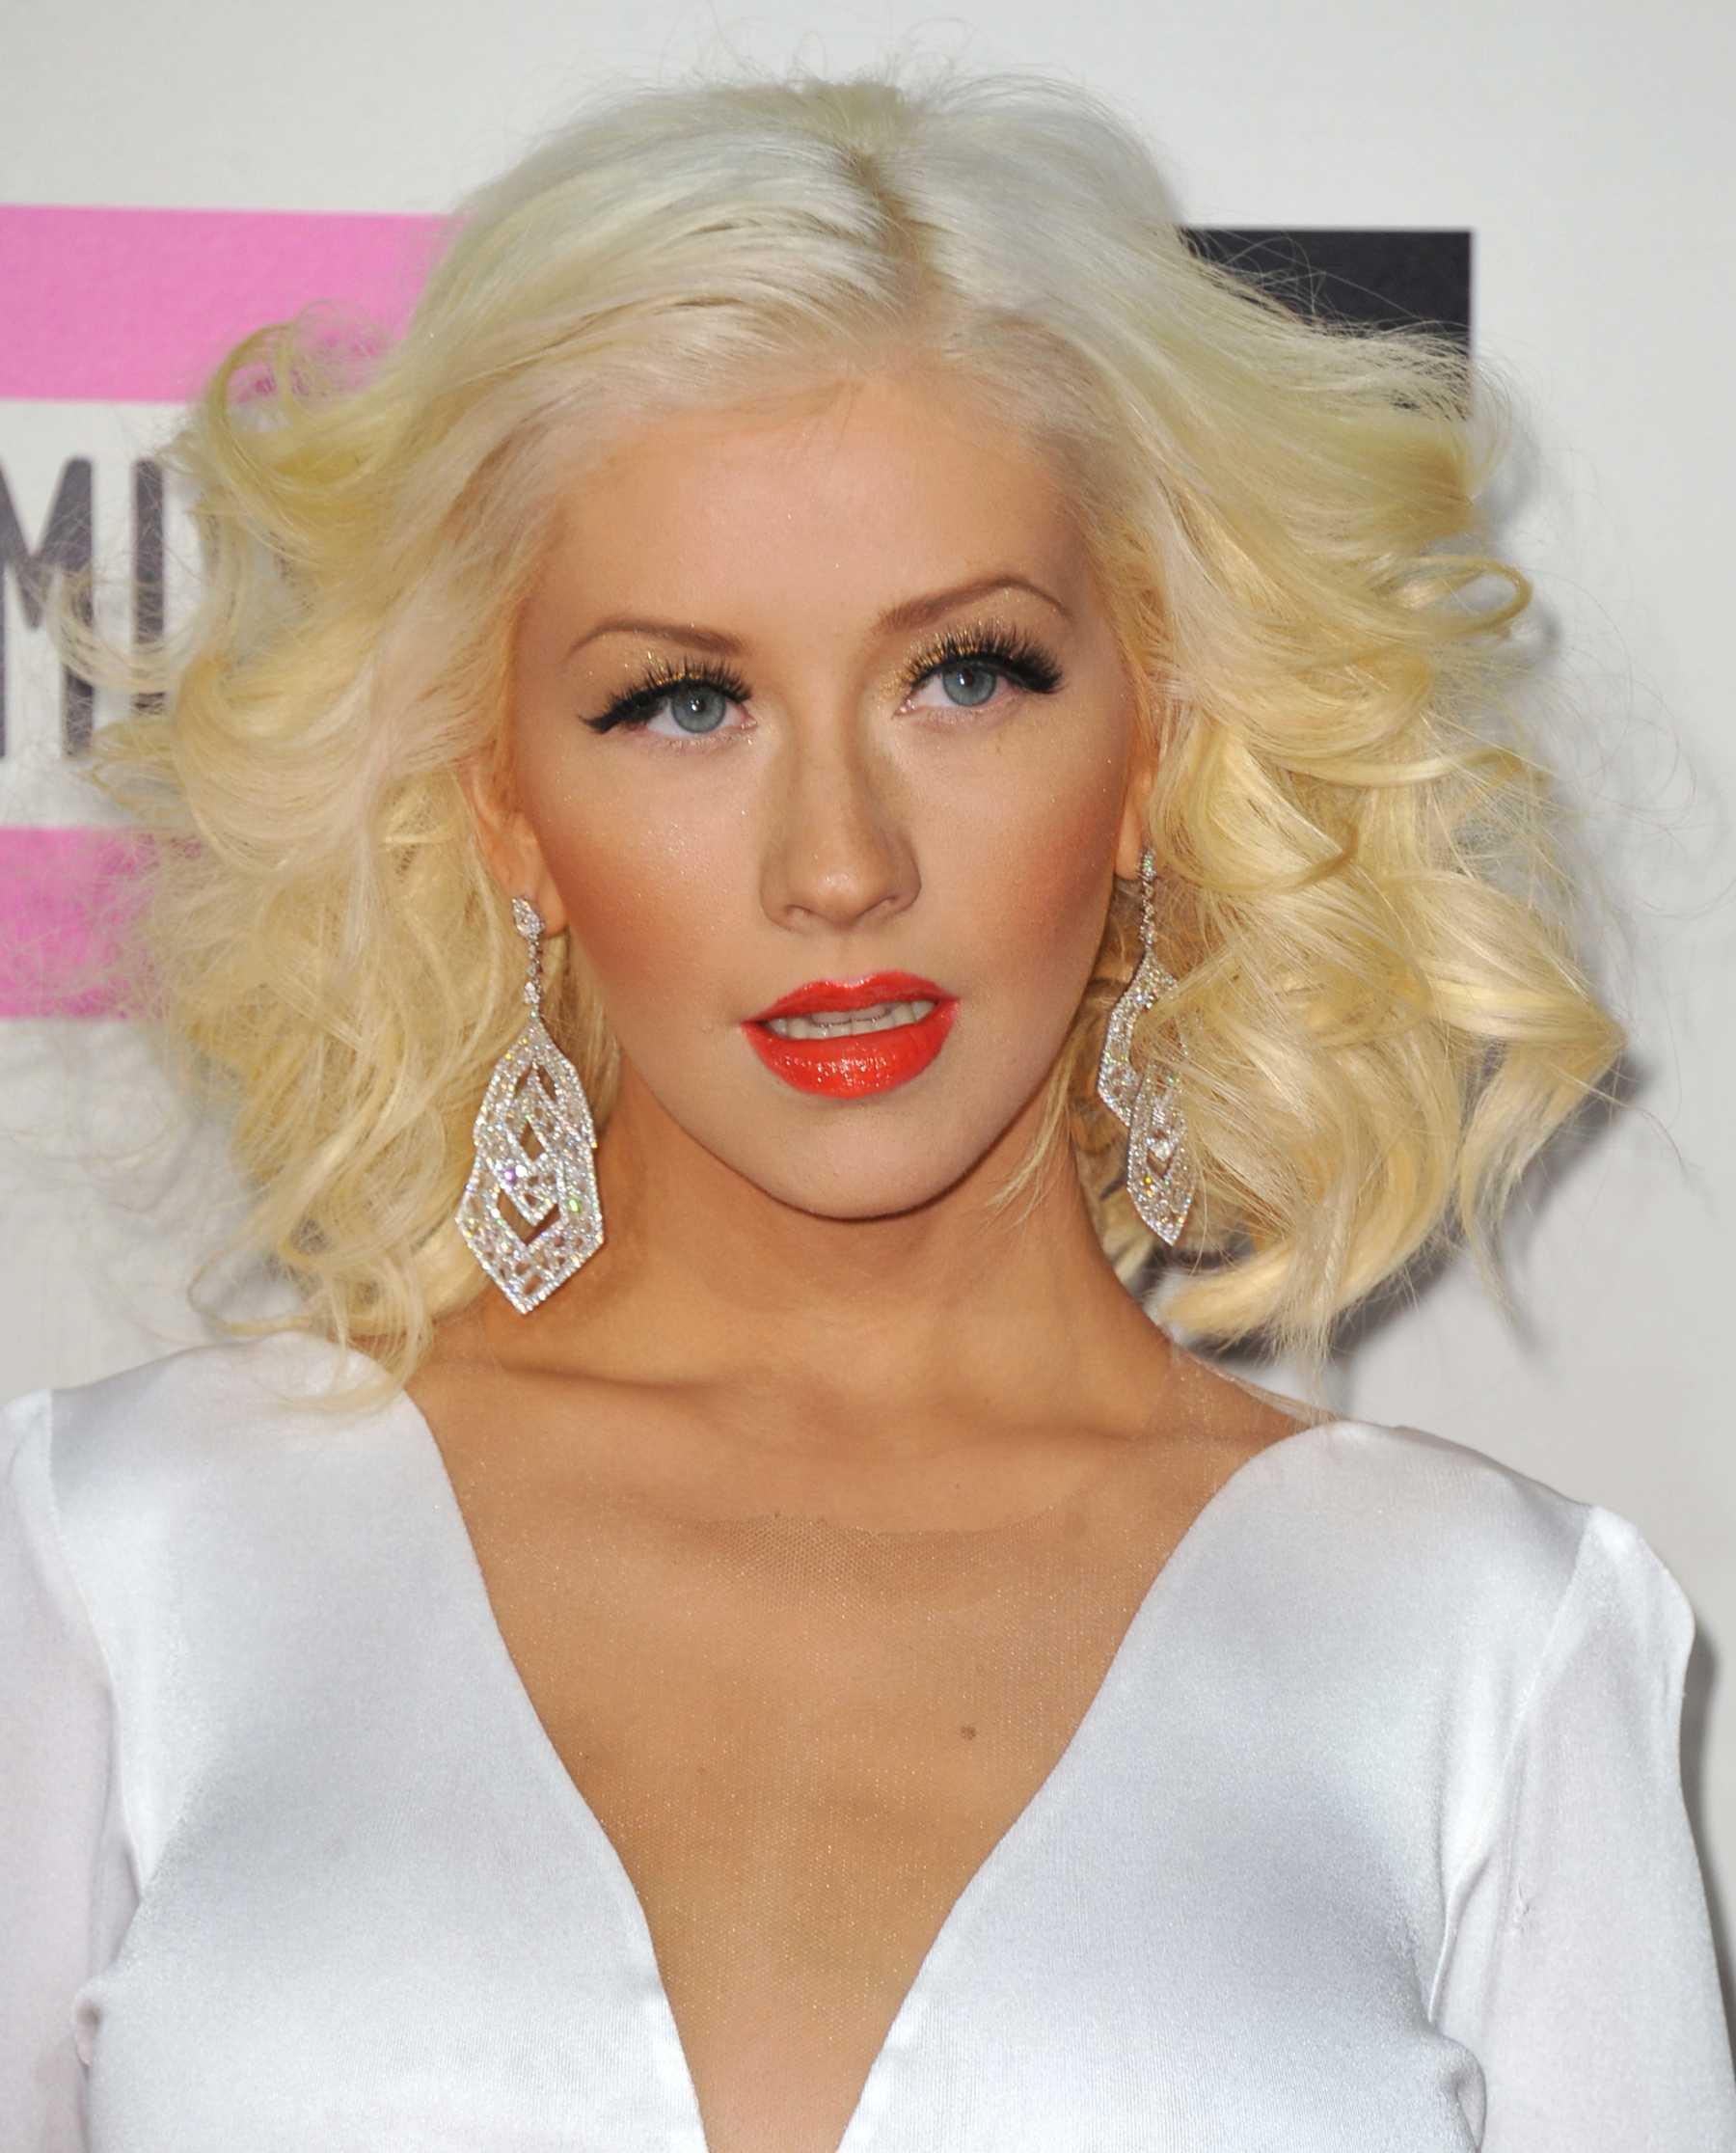 It's About Time! Christina Aguilera Teases Fans With The Promise Of New Music